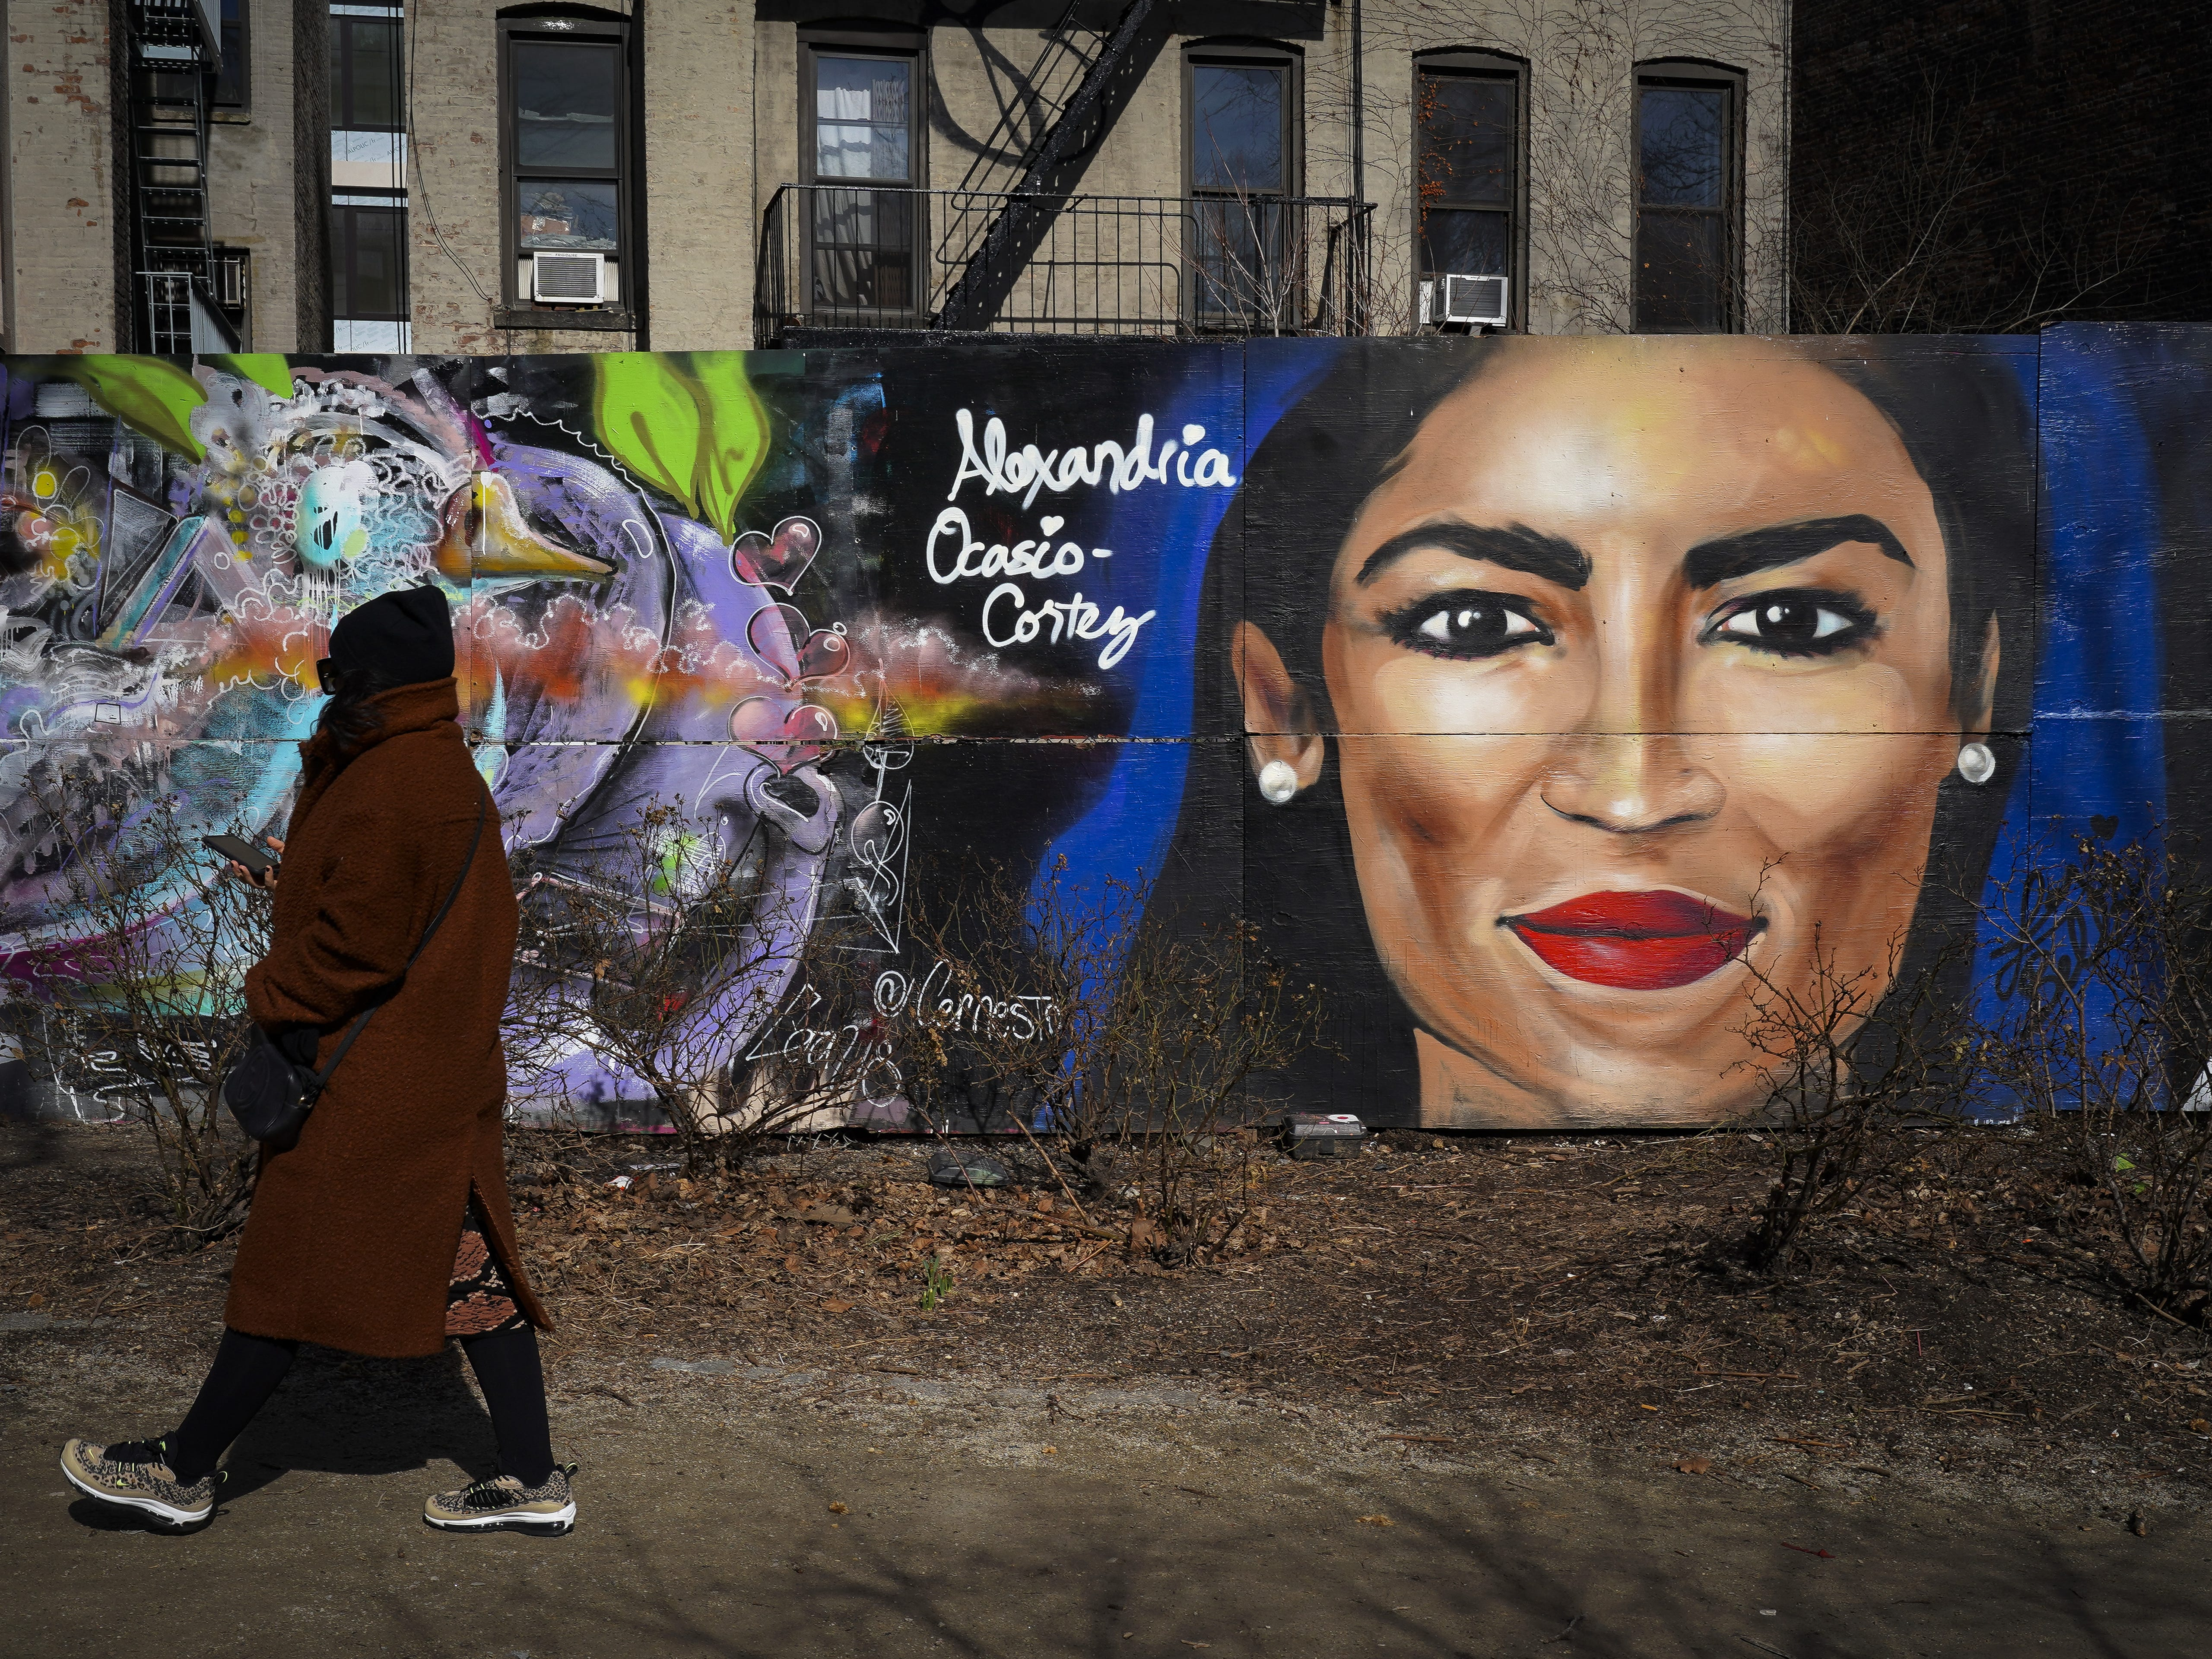 NEW YORK, NY - FEBRUARY 19: A mural depicting the face of Rep. Alexandria Ocasio-Cortez (D-NY) is displayed on a wall in the Lower East Side neighborhood of Manhattan, February 19, 2019 in New York City. Street artist Lexi Bella painted the mural of the young New York Congresswoman, who represents portions of The Bronx and Queens. (Photo by Drew Angerer/Getty Images) ORG XMIT: 775301581 ORIG FILE ID: 1125889985